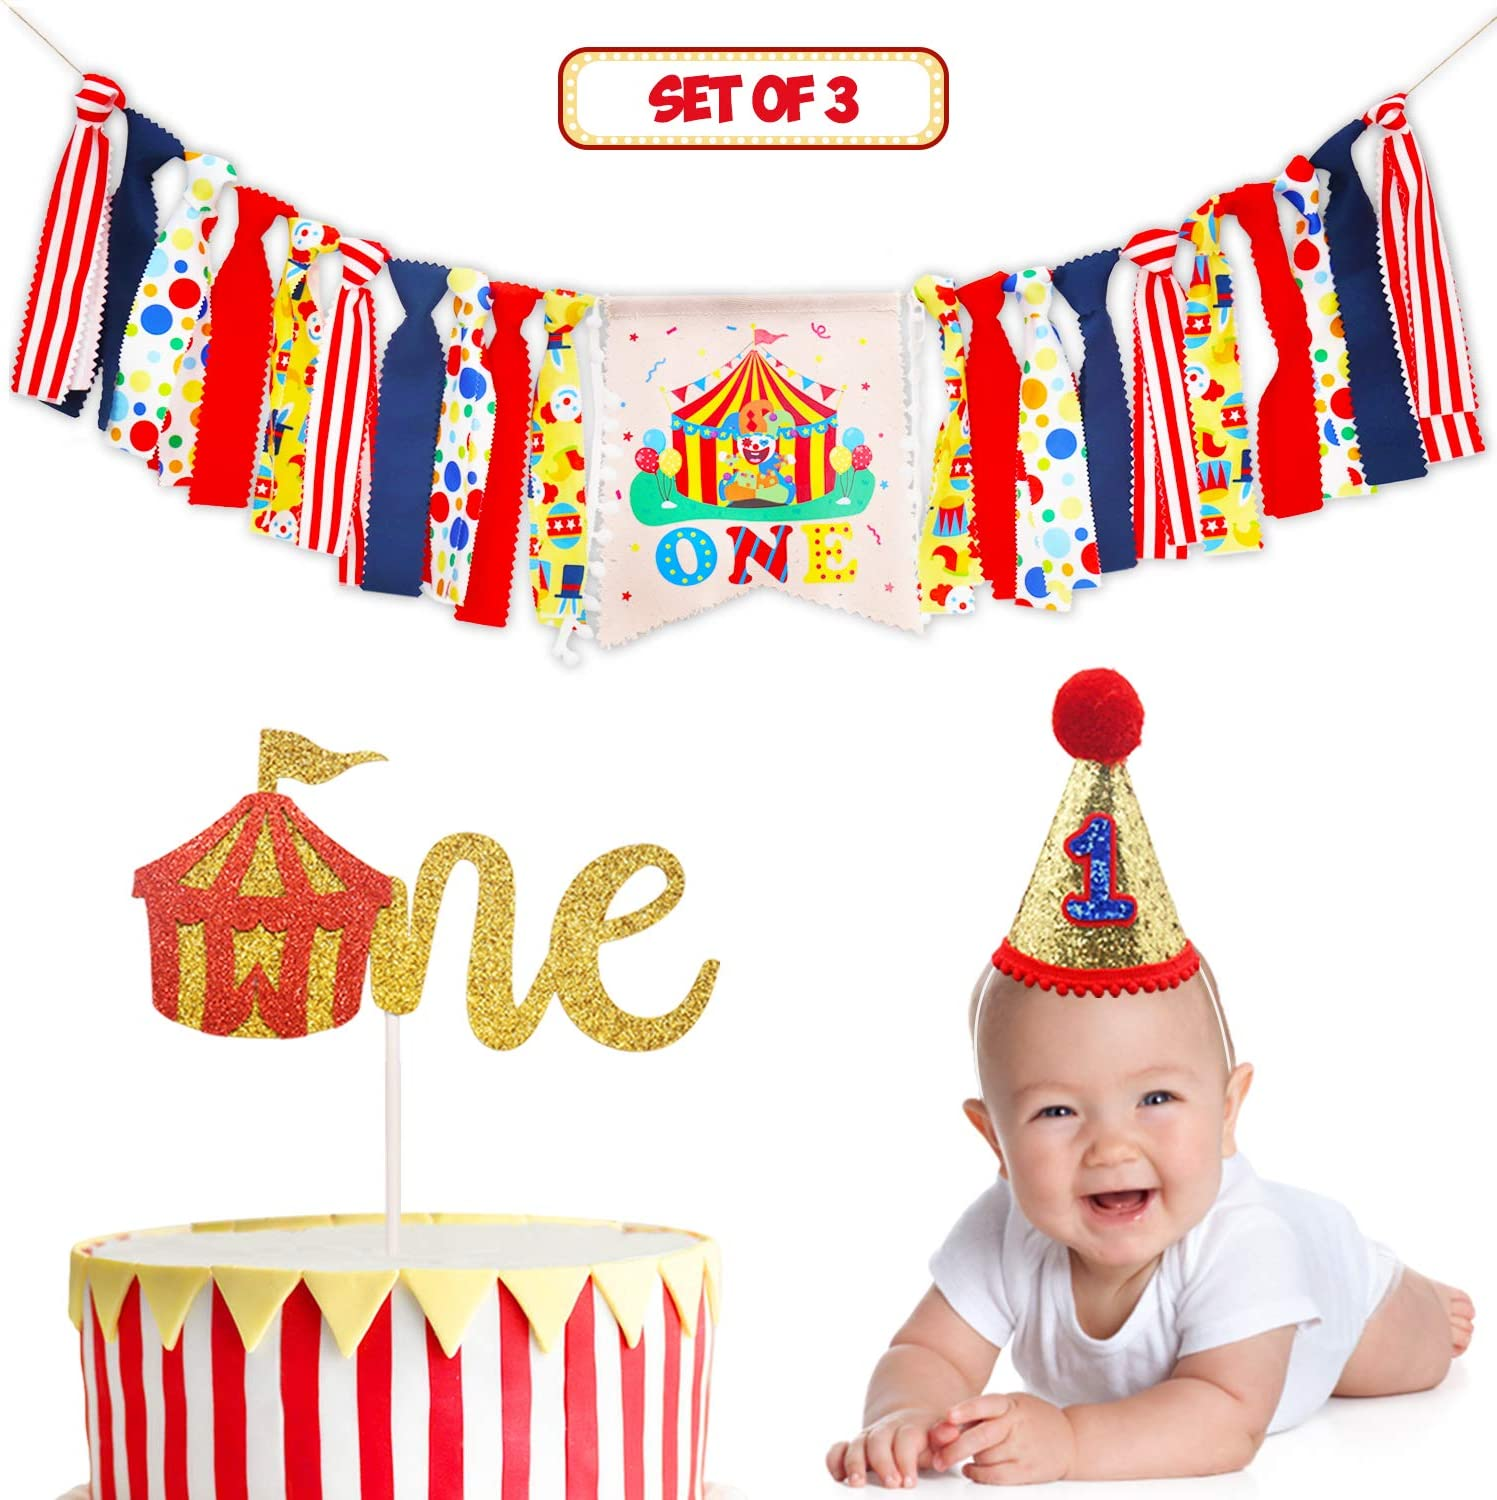 Pleasing Amazon Com Circus Carnival Theme 1St Birthday Decorations Kit Personalised Birthday Cards Paralily Jamesorg